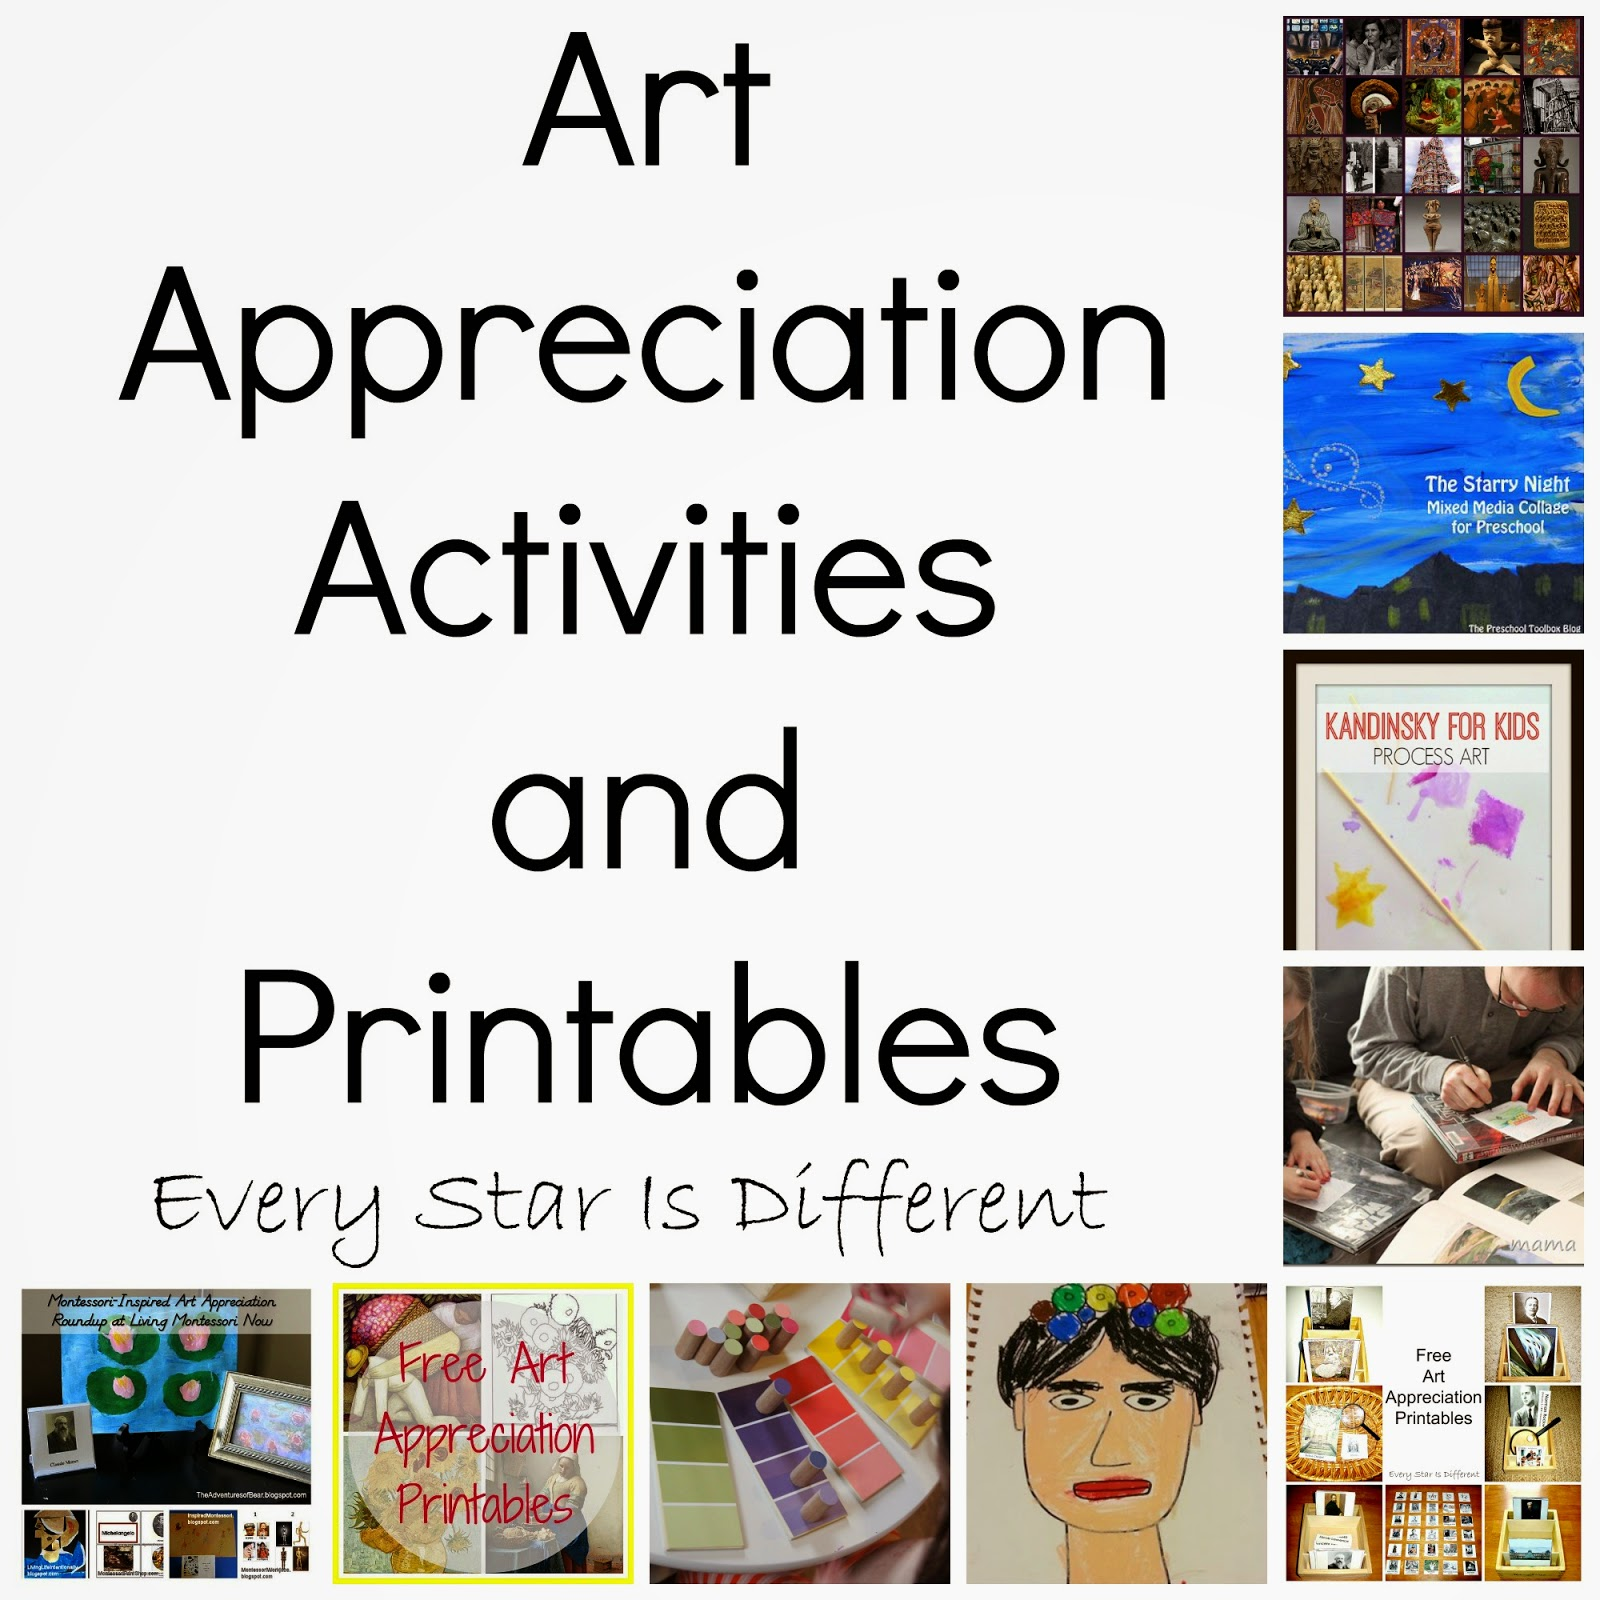 Art Appreciation Activities And Printables For Kids Klp